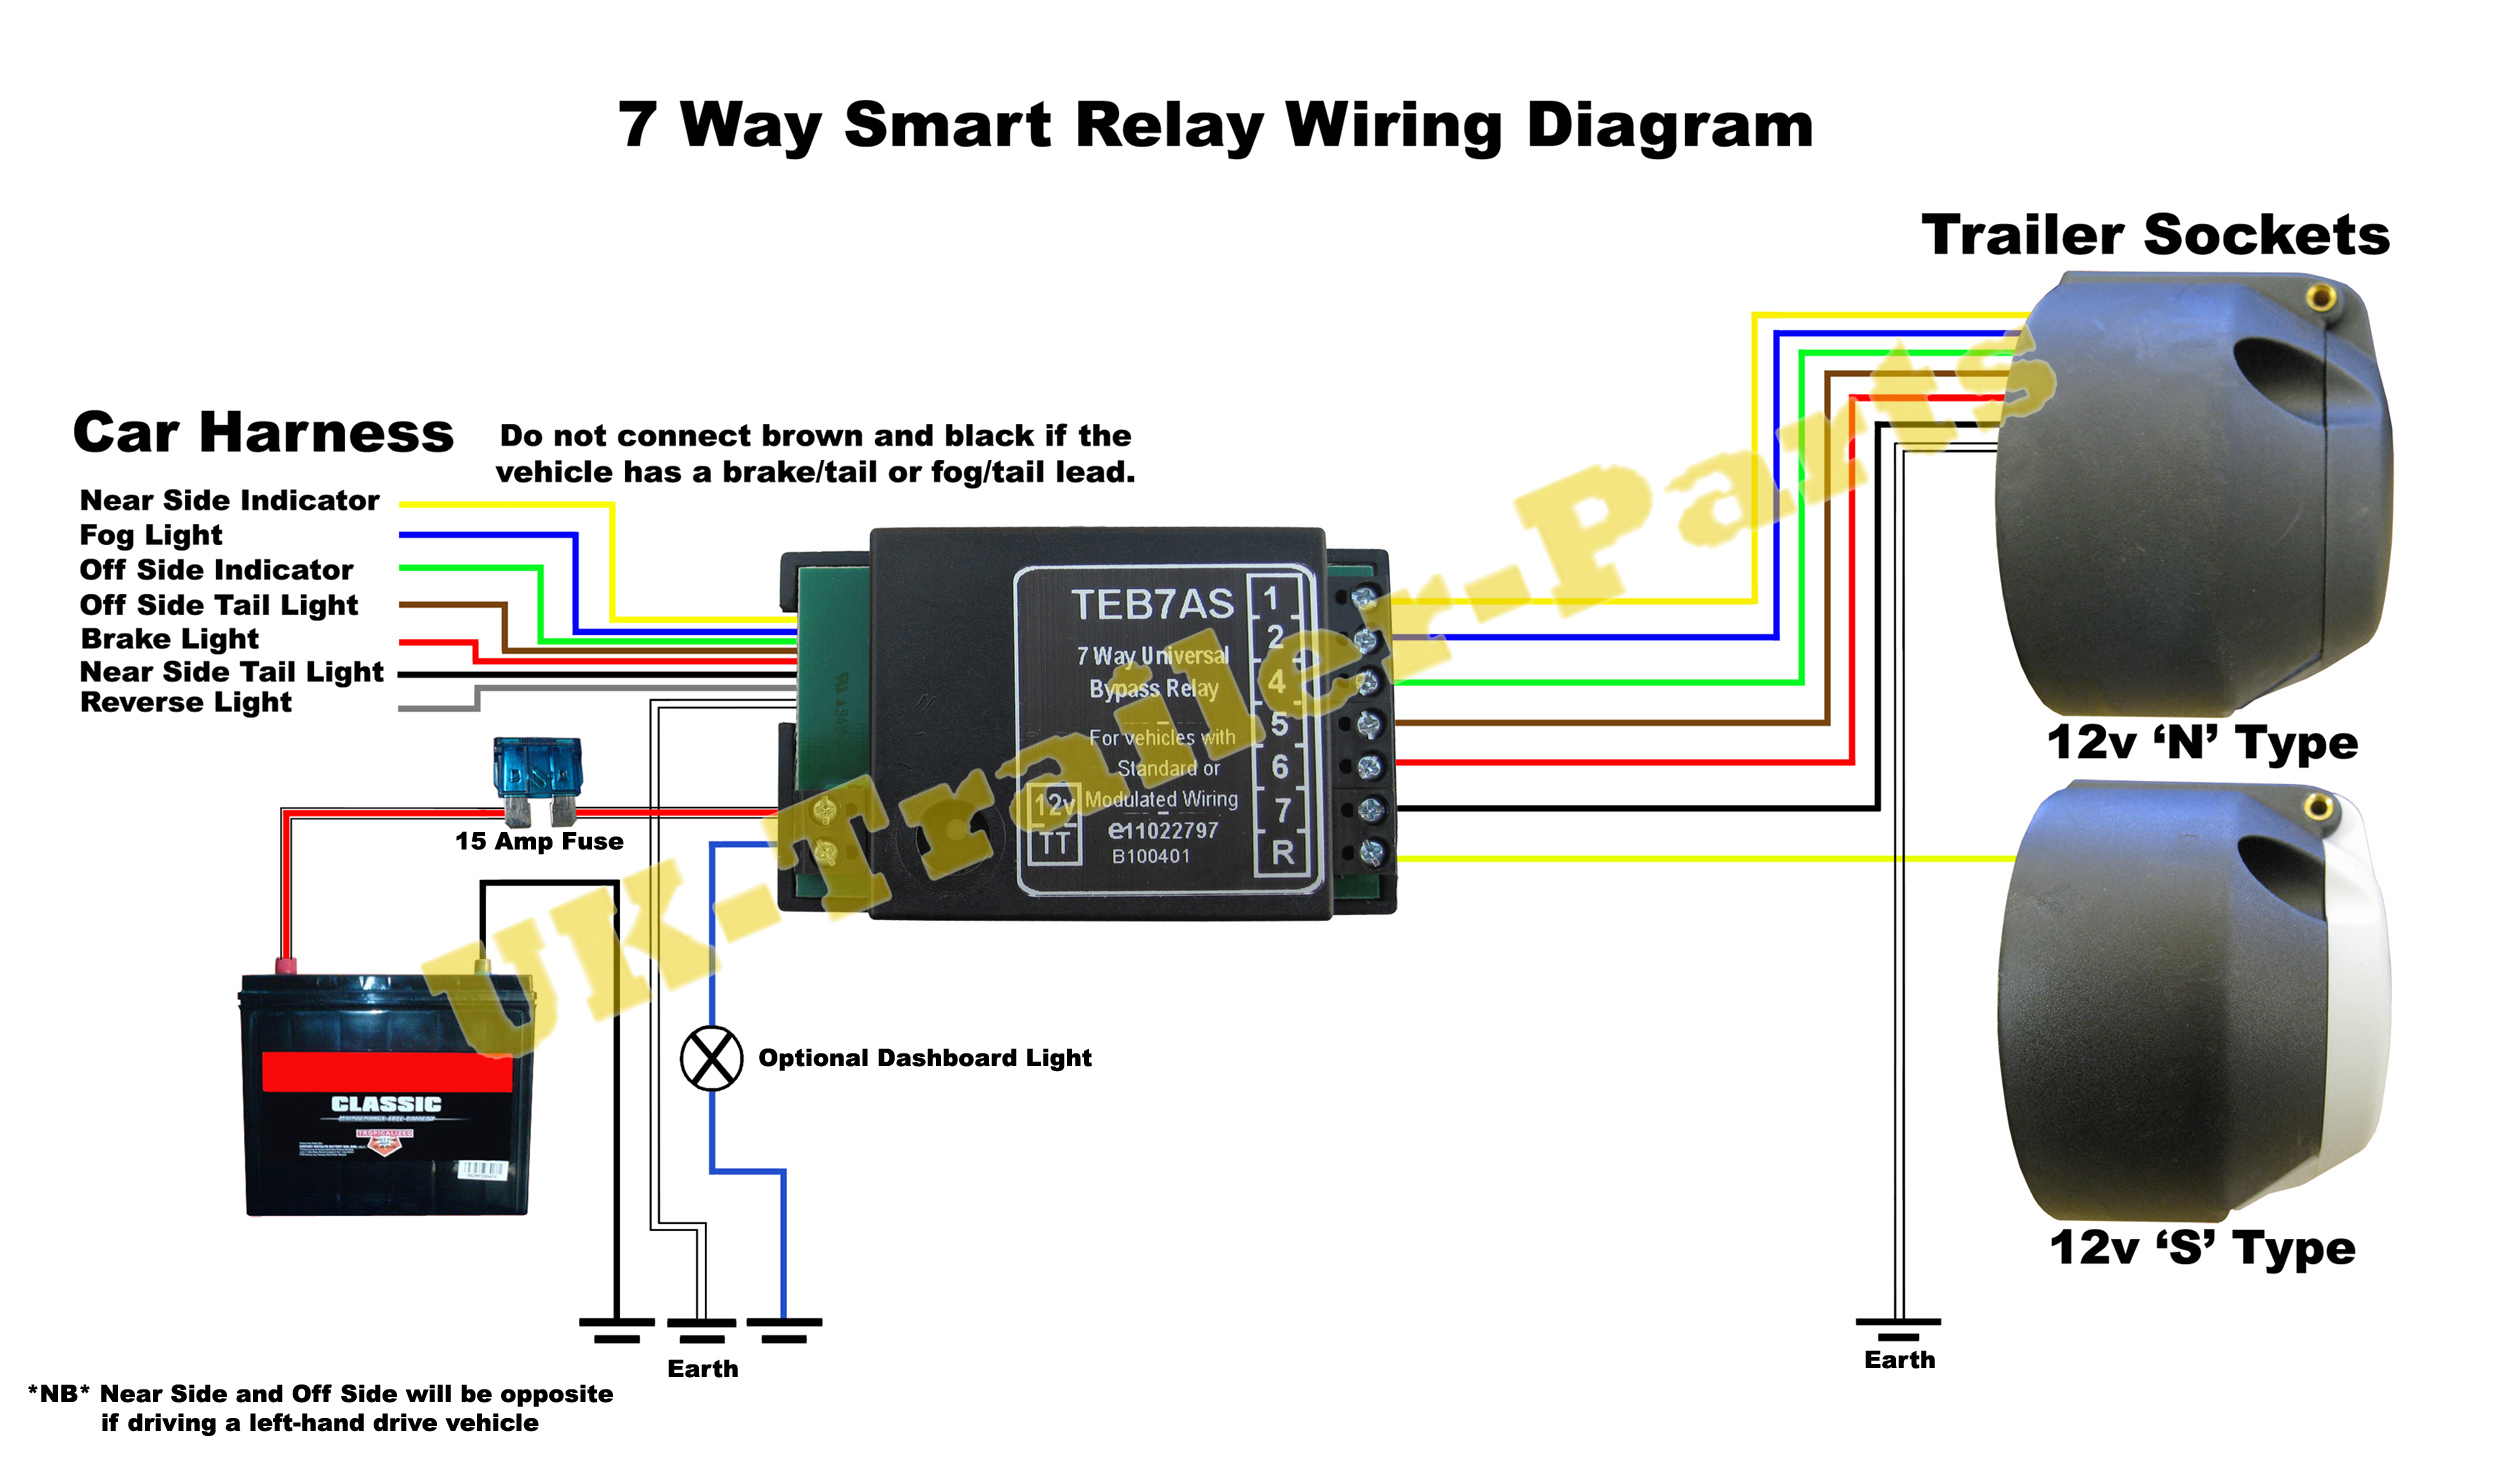 smart relay wiring diagram2 7 way universal bypass relay wiring diagram uk trailer parts ford s max towbar wiring diagram at bakdesigns.co